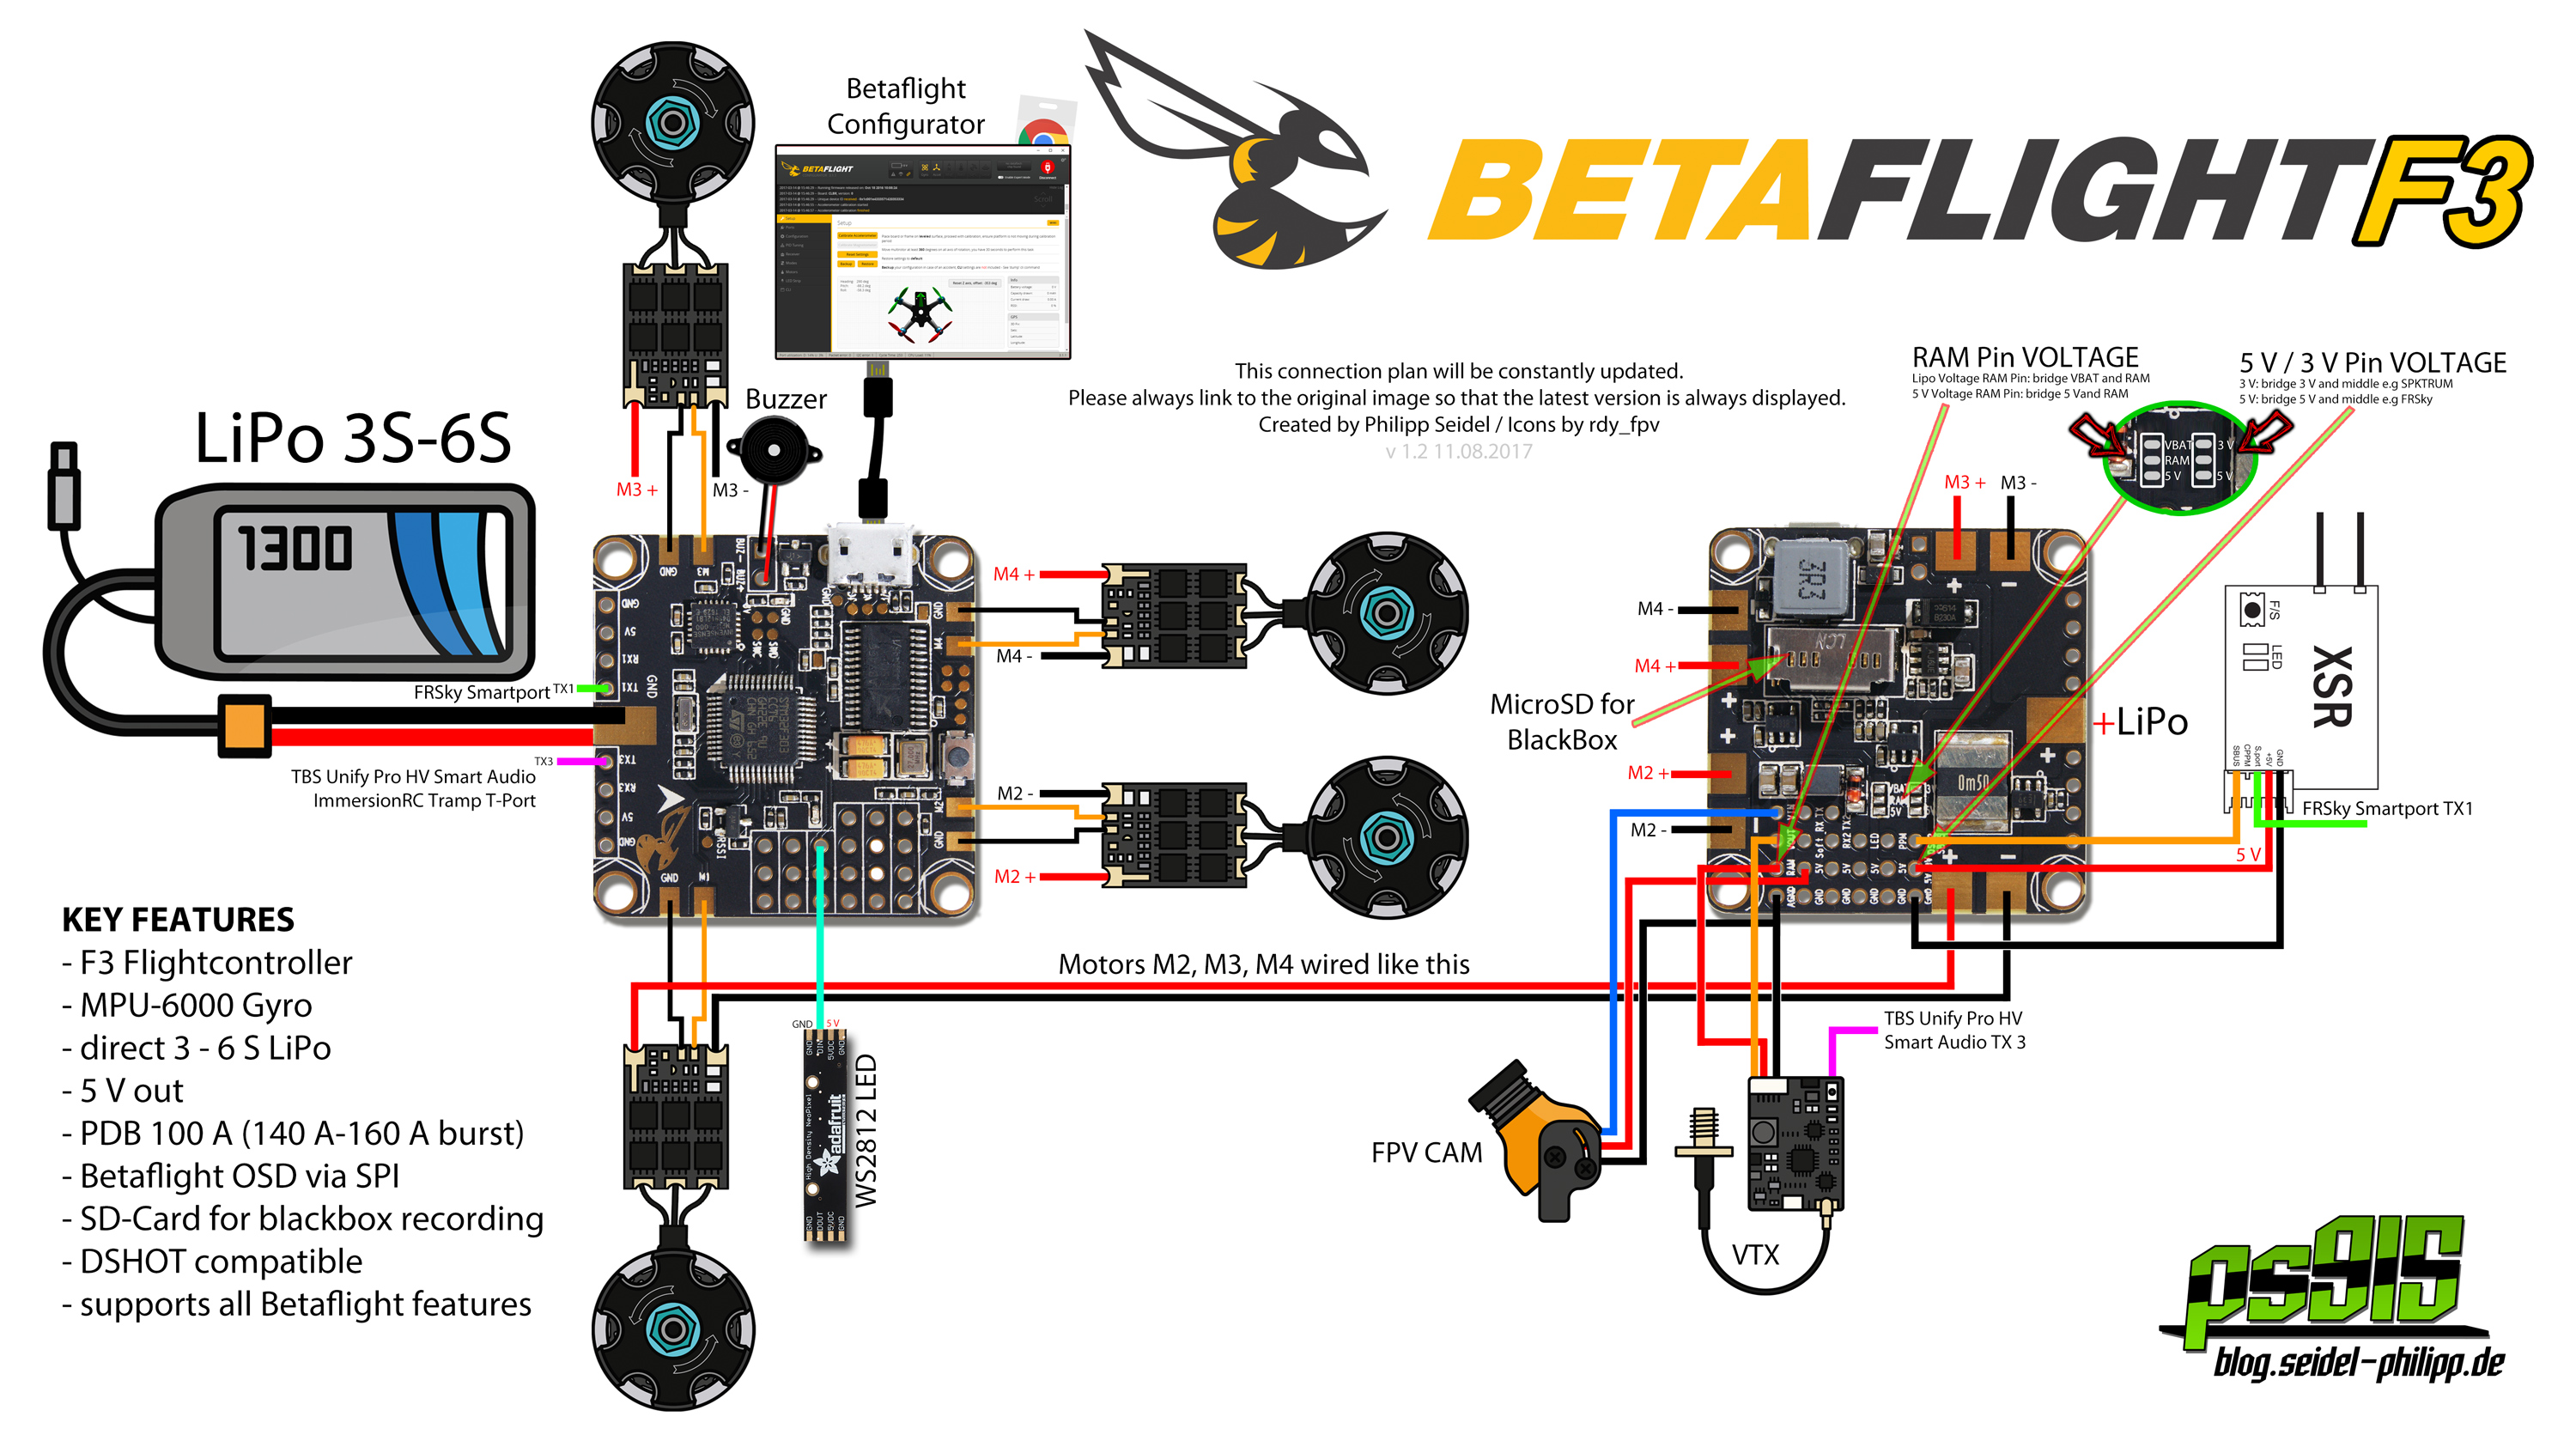 Betaflight_F3_Flight_Controller_Anschlussplan_Wiringplan betaflight f3 flight controller anschlussplan wiringplan sp racing f3 wiring diagram 6ch receiver at edmiracle.co